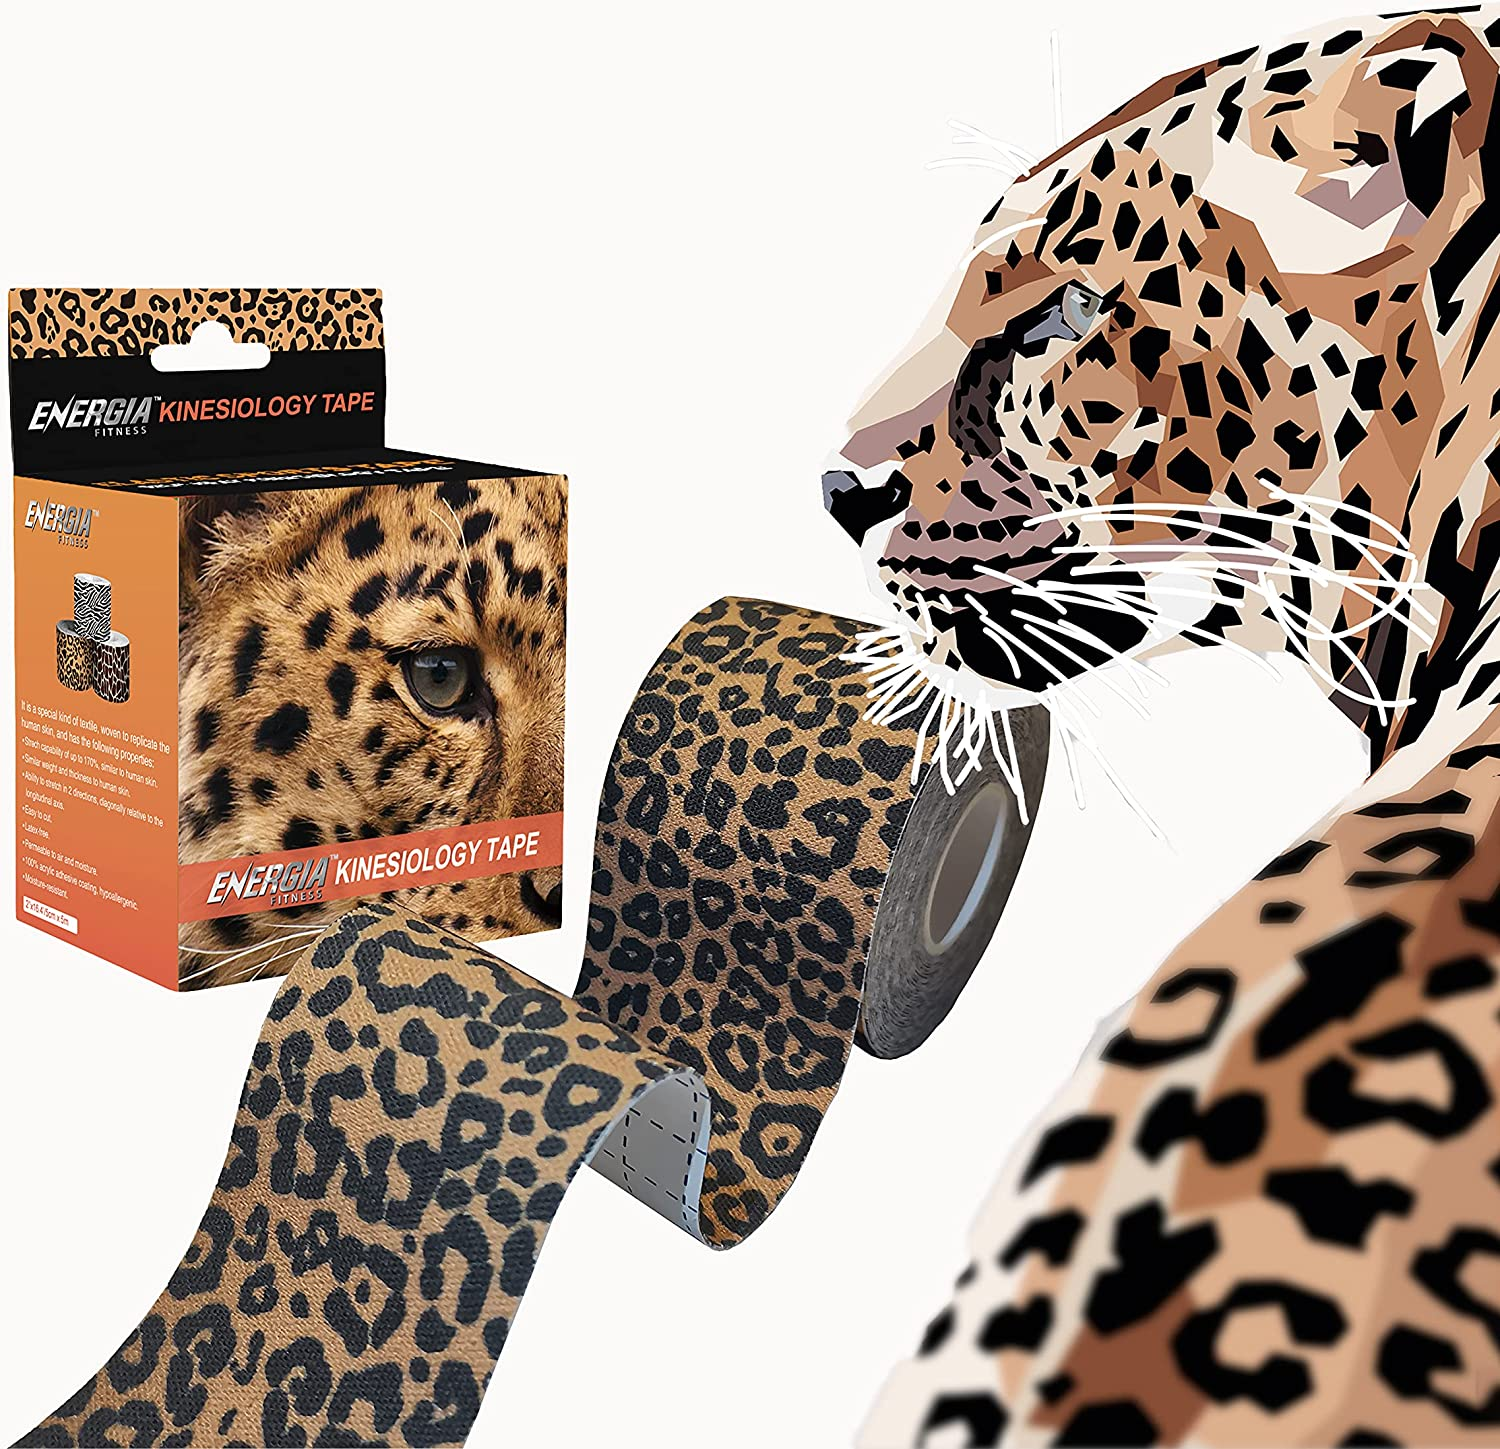 Energia Fitness Wild Collection Kinesiology Tape 2 inch x 16.4 feet Uncut Roll Hypoallergenic Elastic Waterproof Breathable Therapeutic Cotton Athletic Sports Tape for Pain Relief (Leopard): Health & Personal Care